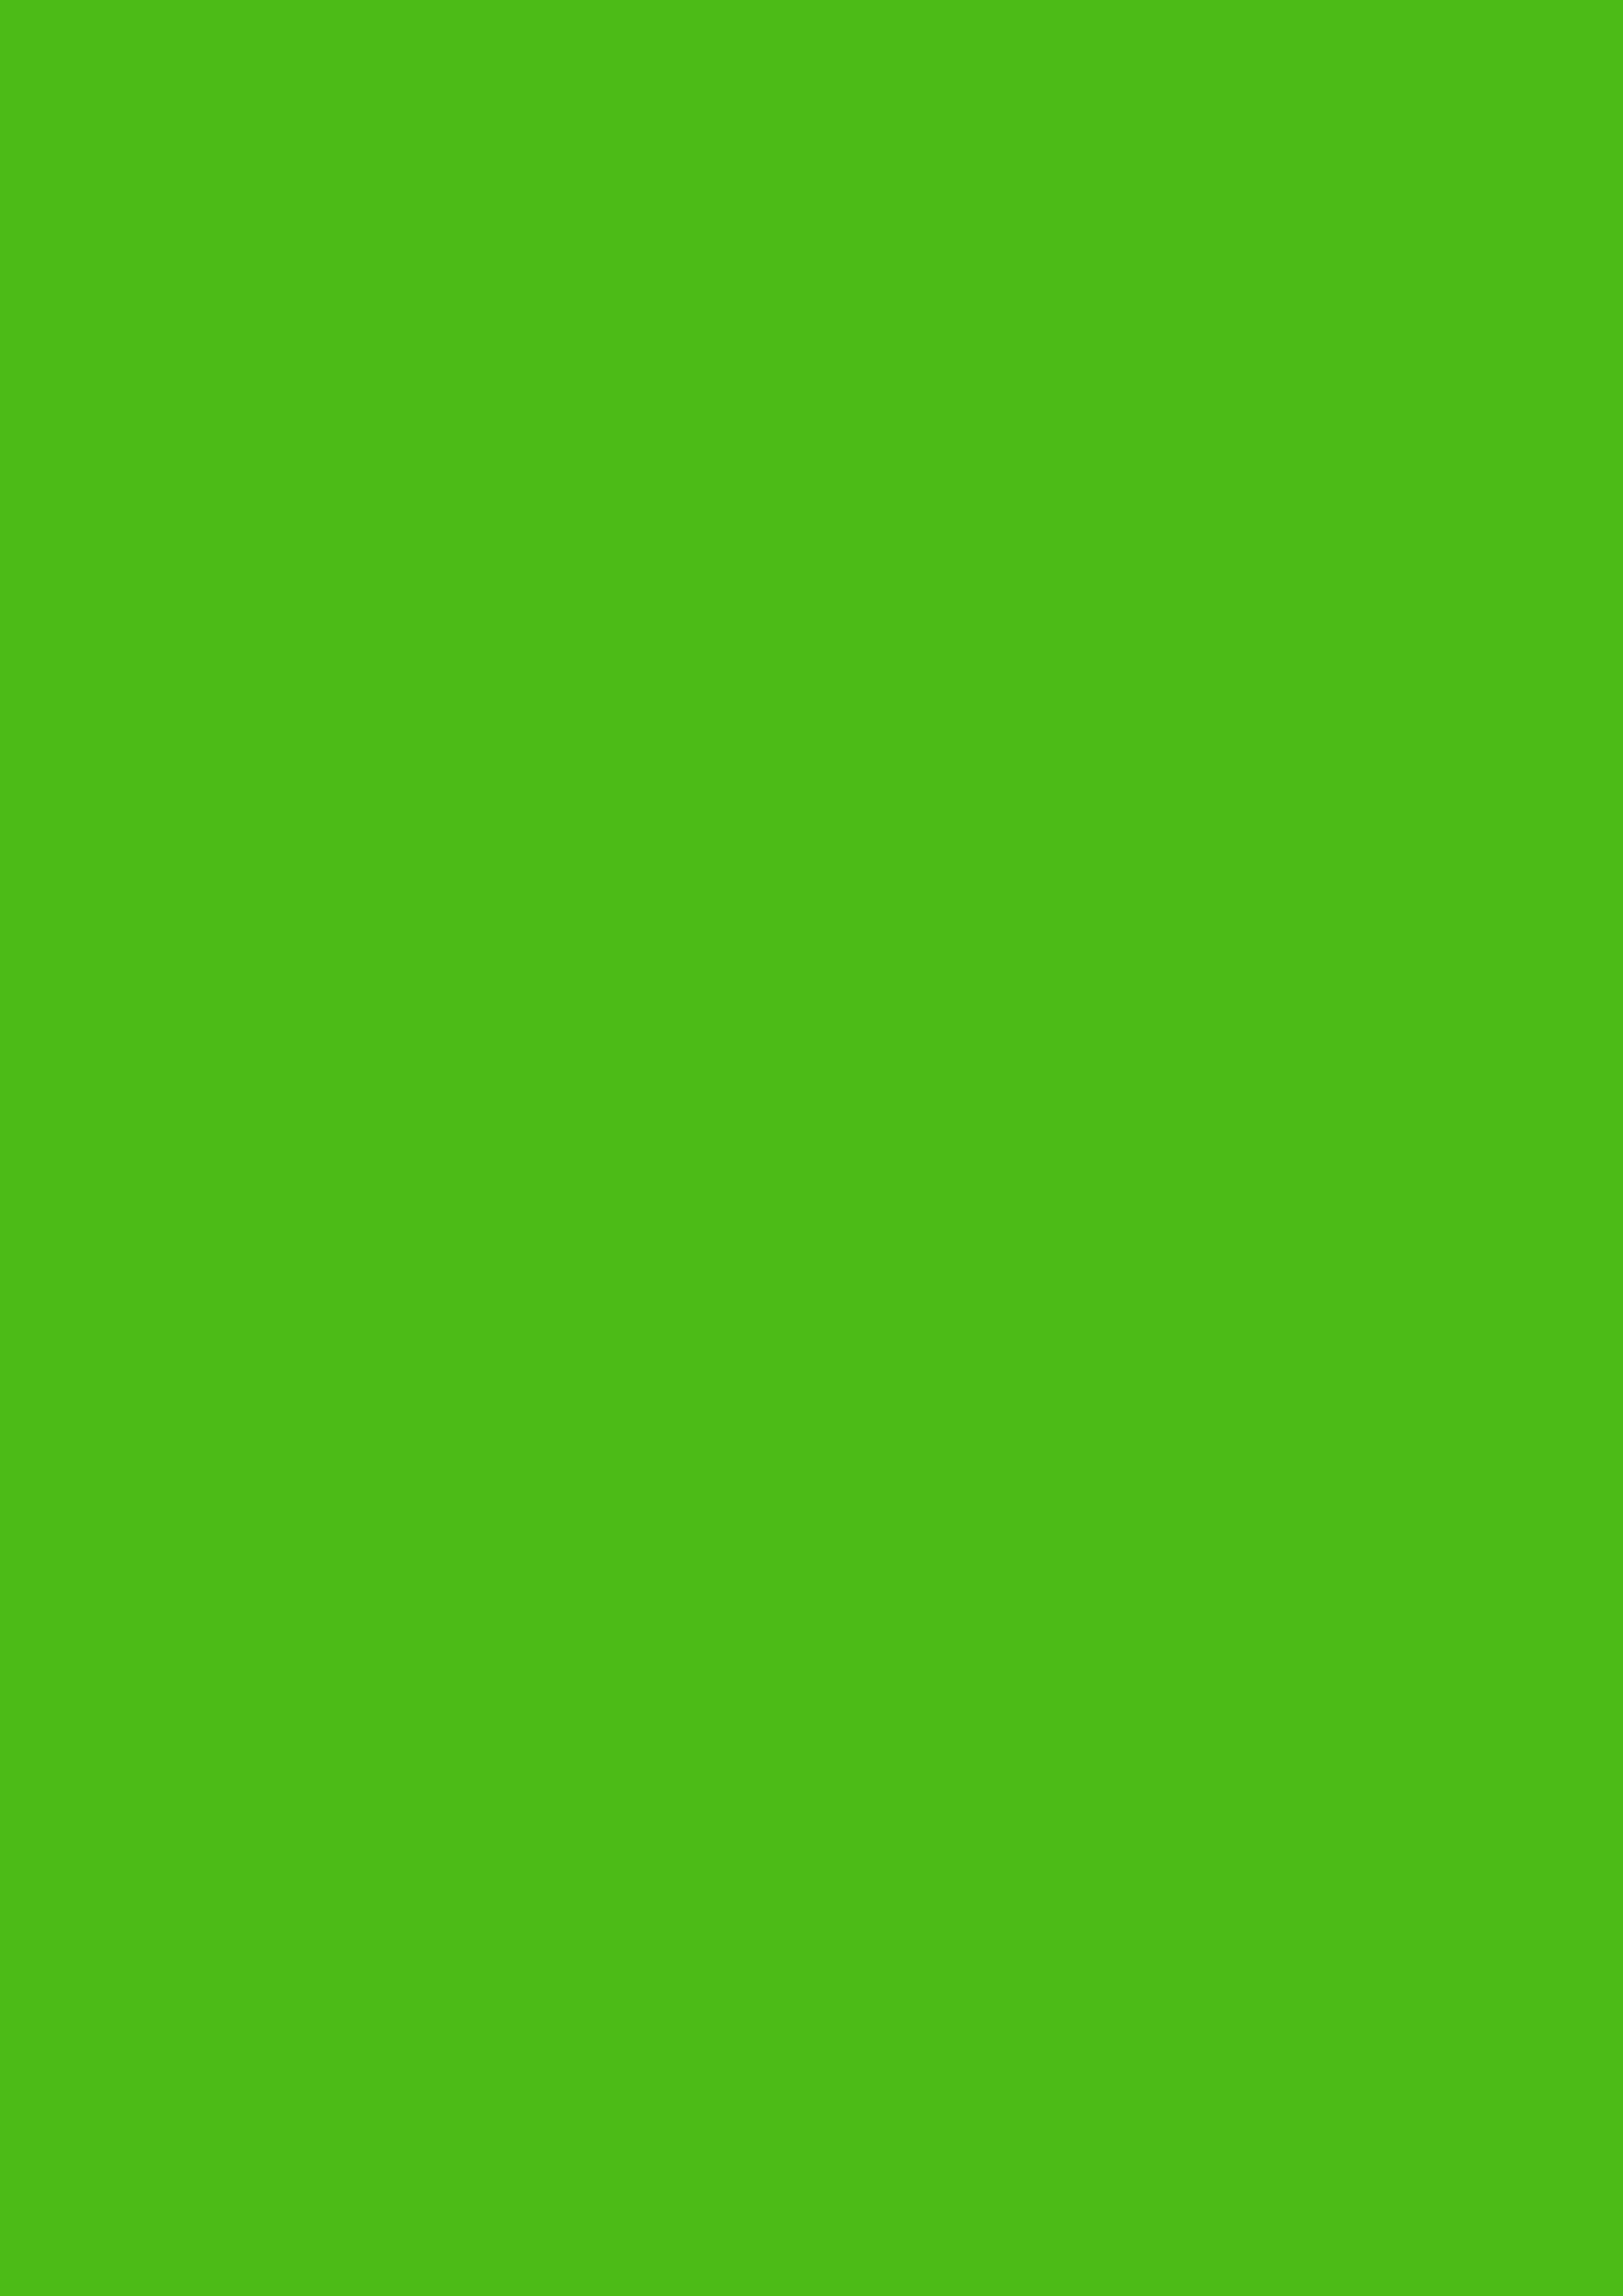 2480x3508 Kelly Green Solid Color Background